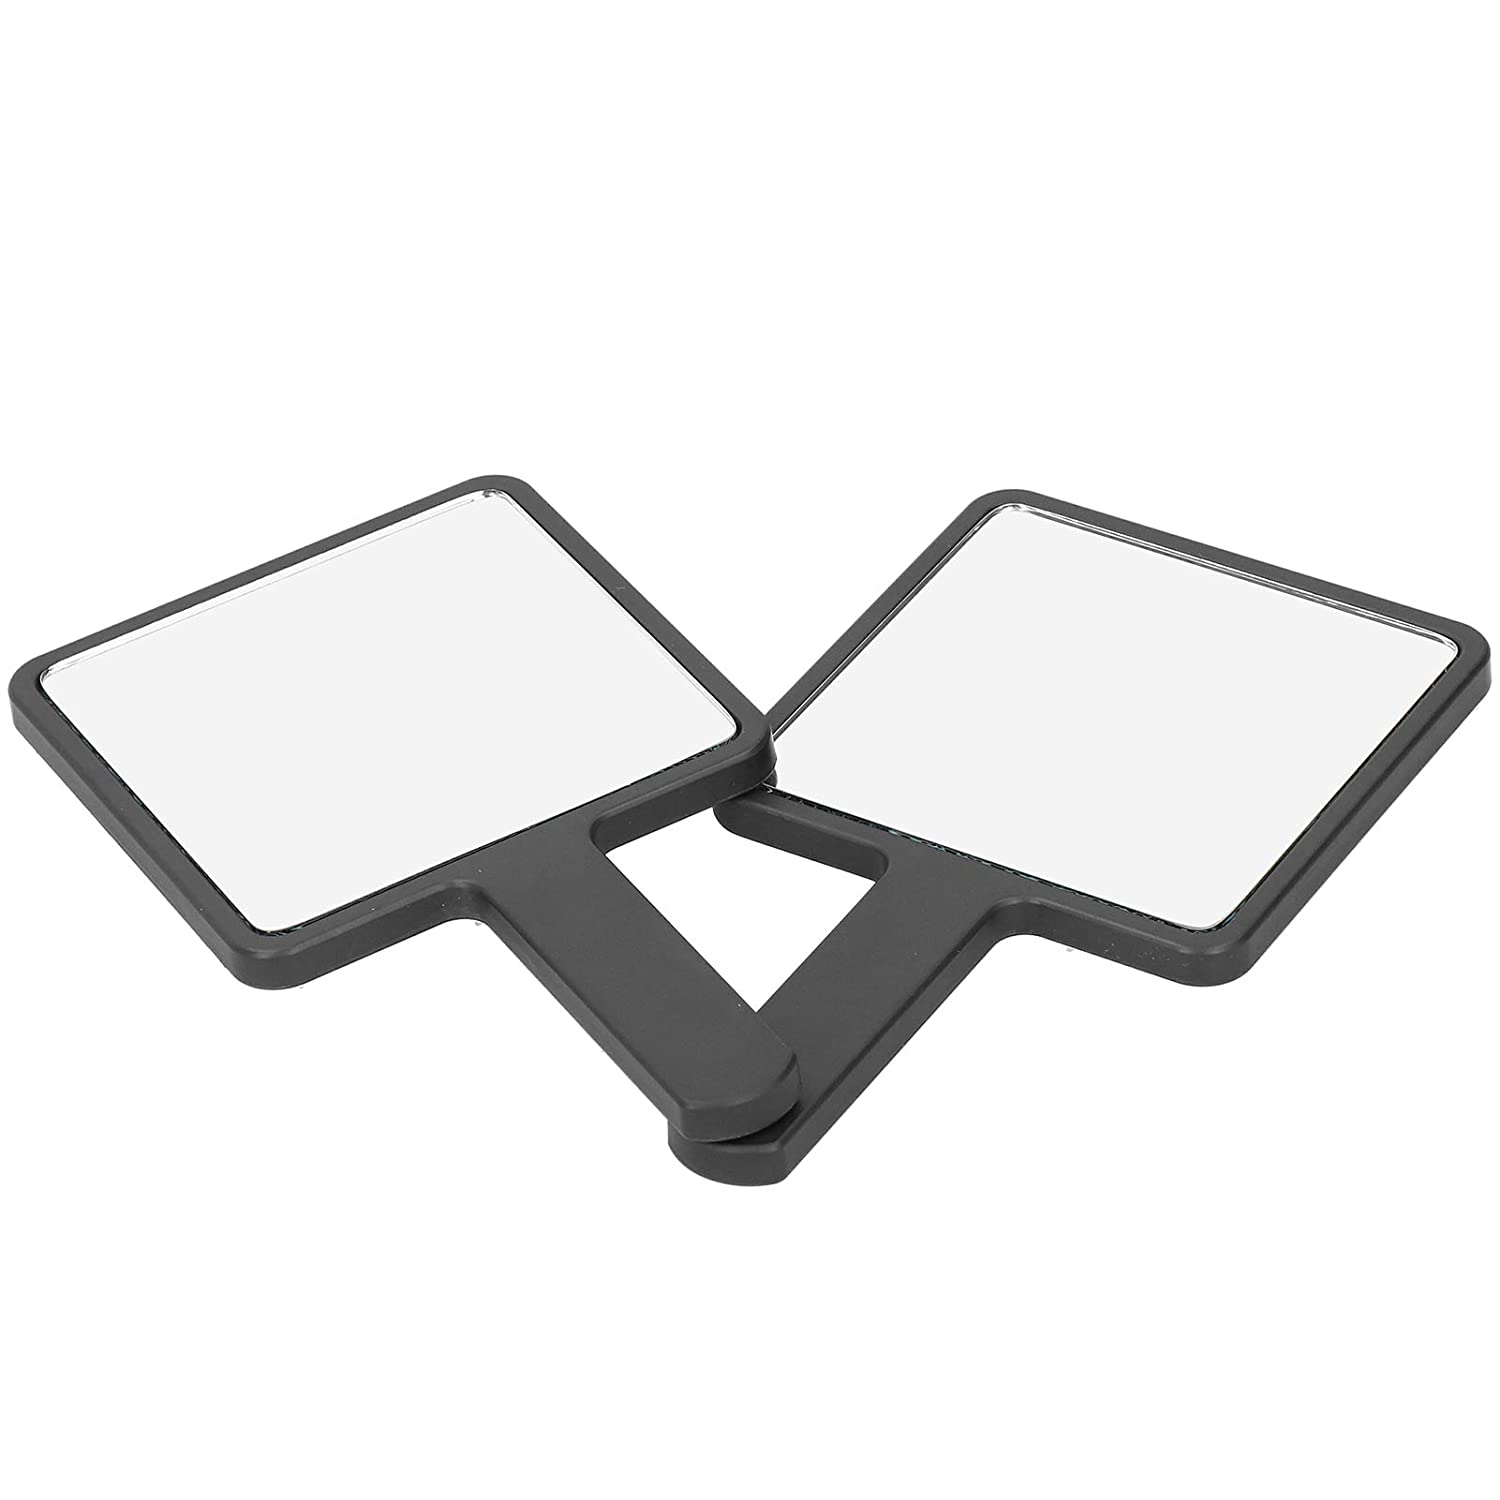 Portable Cosmetic Mirror Vanity Excellence Square Design S Ultra-Cheap Deals Compact